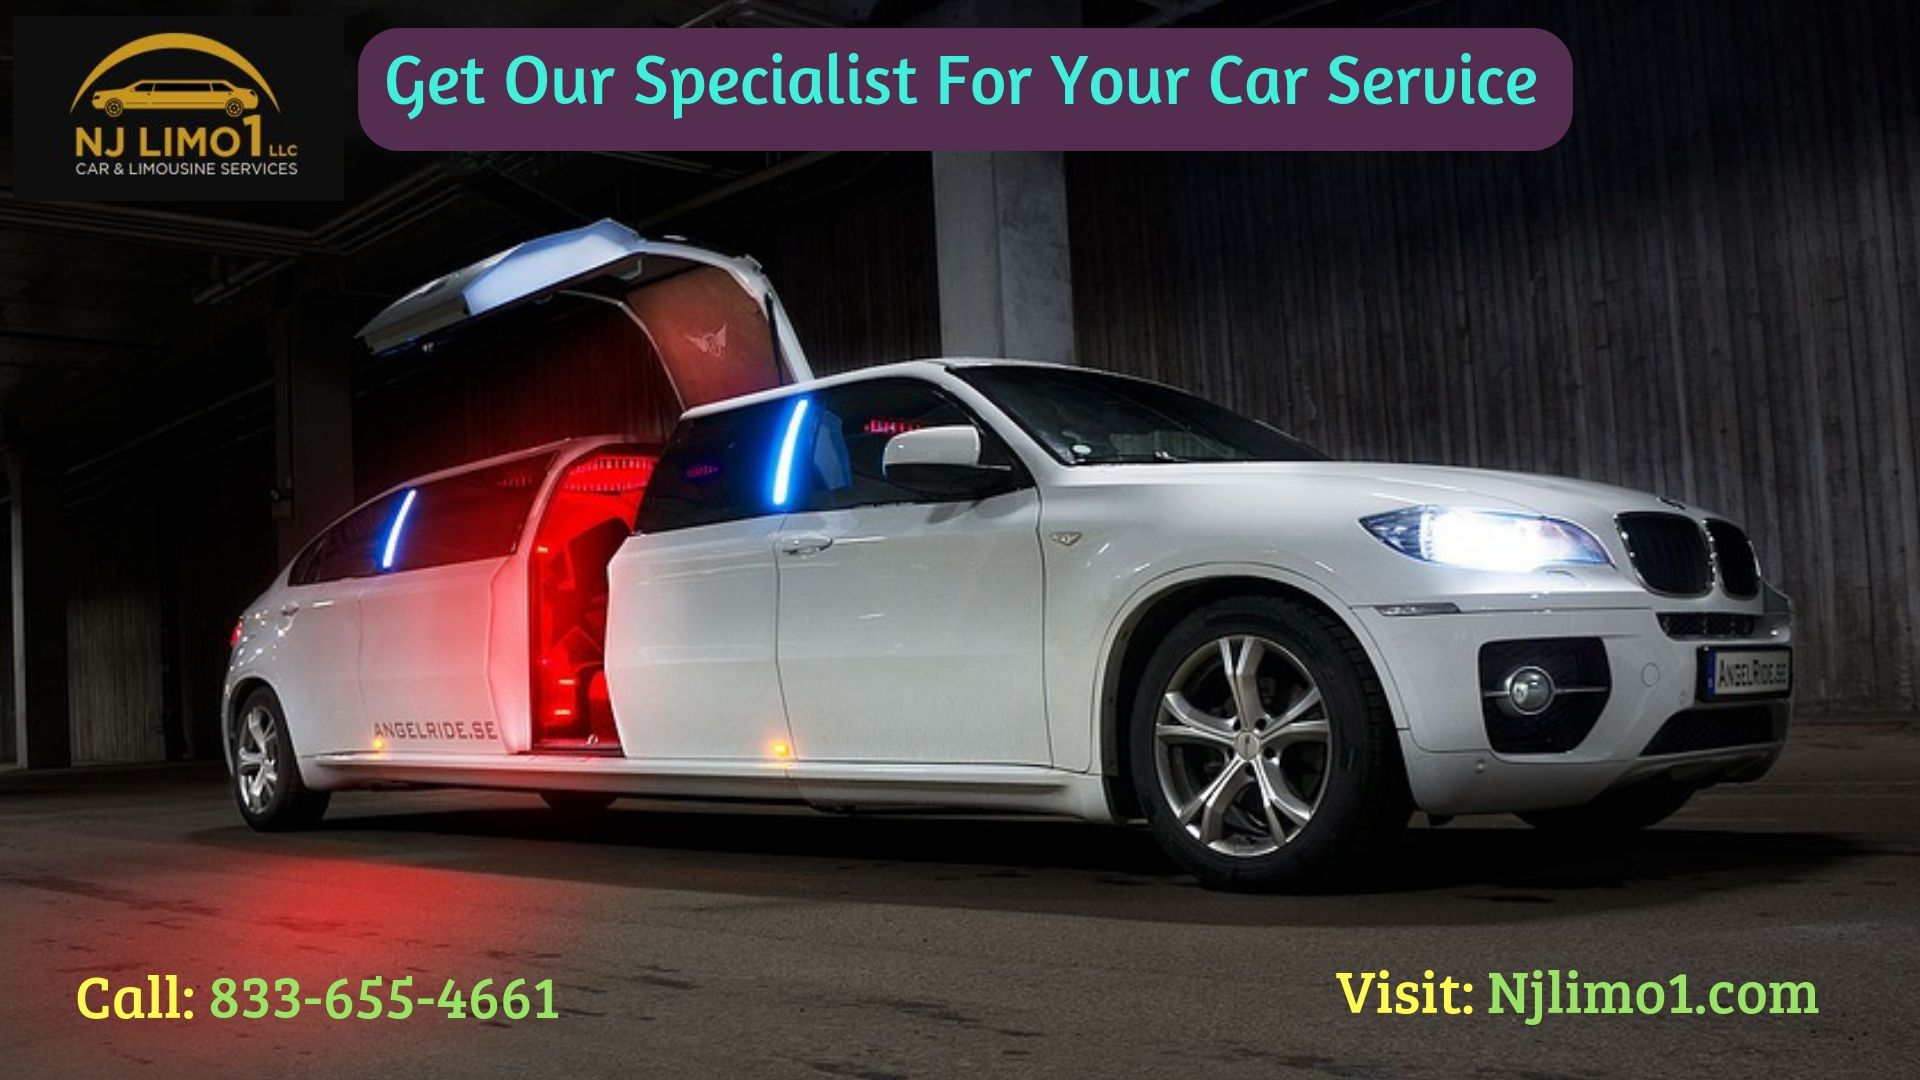 Looking For The Secure Car Service For Your Transportation At Nj Limo 1 Llc We Provide Hassle Free Town Car Service Wedding Limo Service Airport Limo Service